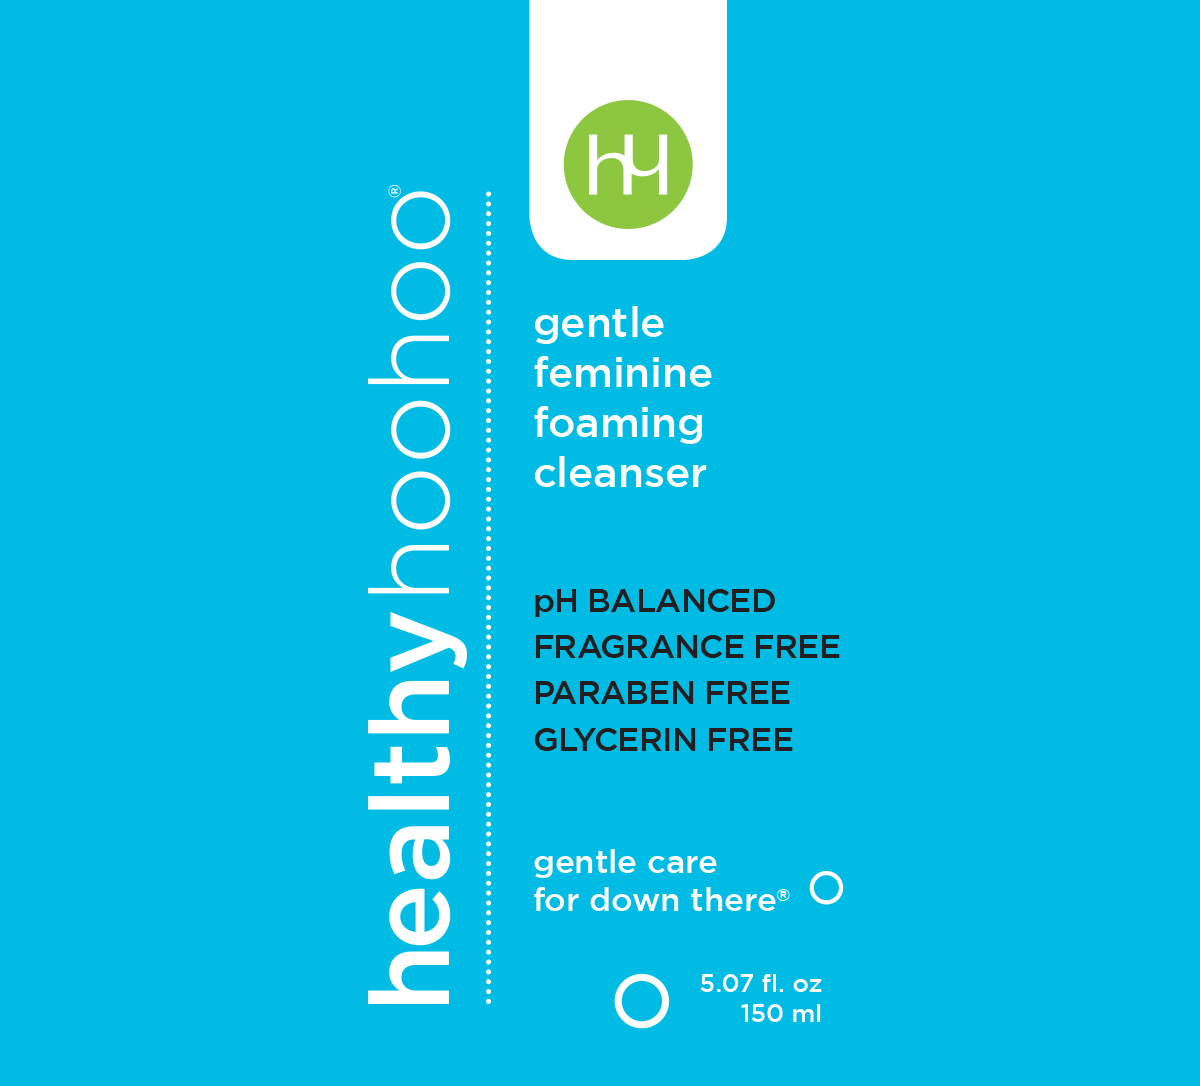 healthy hoohoo feminine wash is ph balanced, fragrance free, paraben free and glycerin free